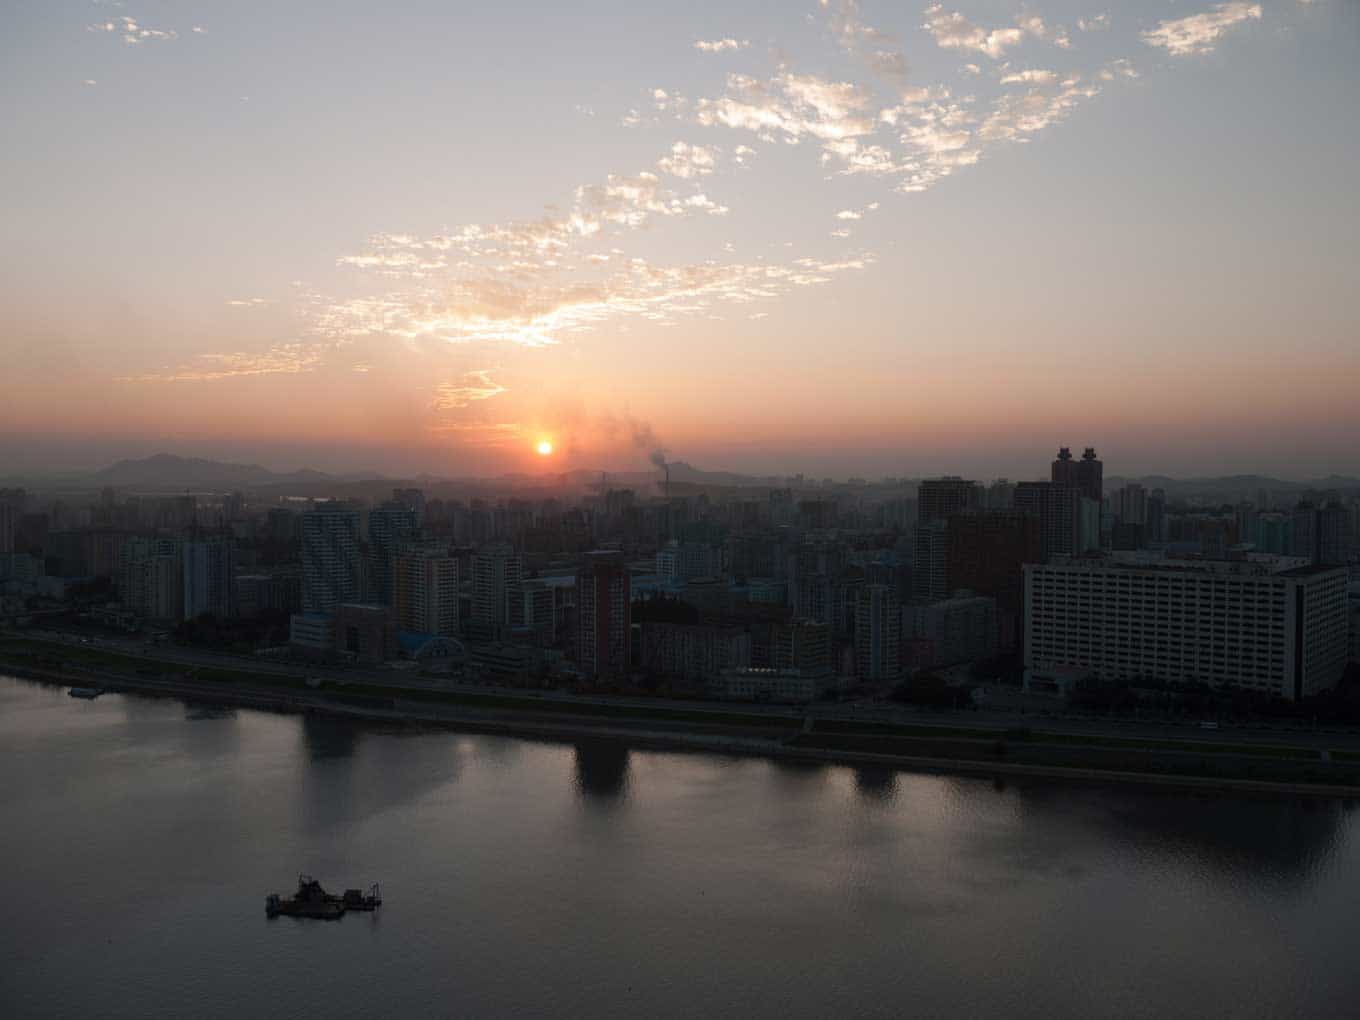 View of Pyongyang - short skyscrapers, a sunrise/sunset - a singular boat on the water